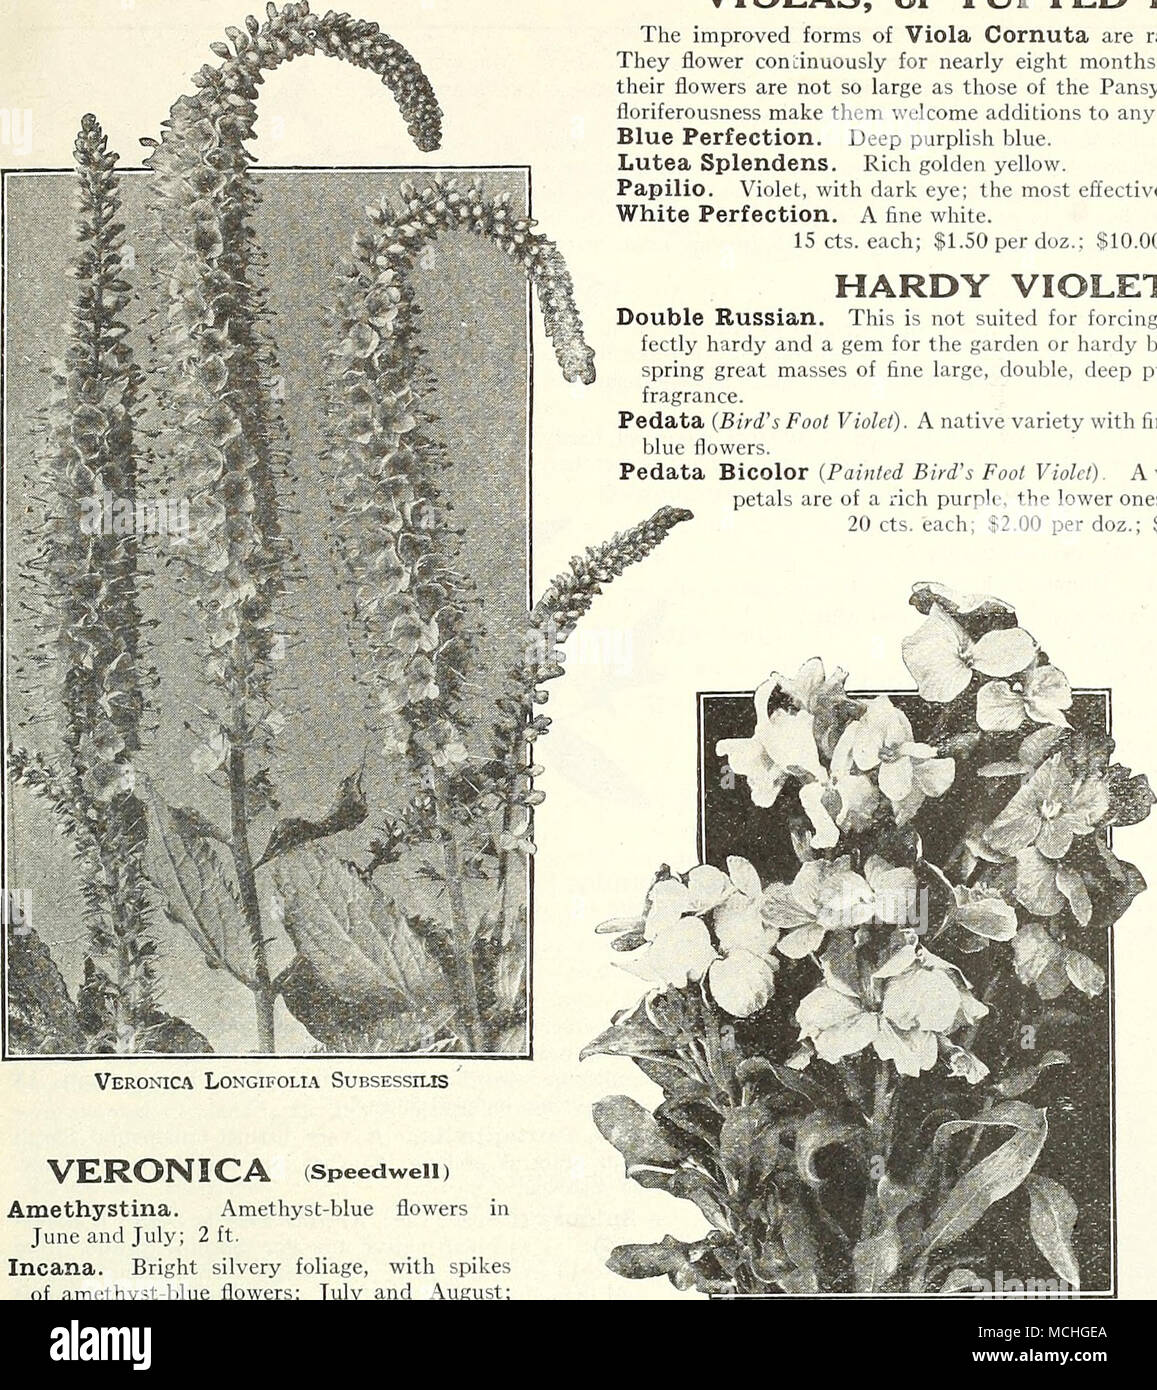 Veronica longifolia subsessilis veronica speedwell amethystina amethyst blue flowers in june and july 2 ft incana bright silvery foliage with spikes of amethyst blue flowers july and august 1 foot izmirmasajfo